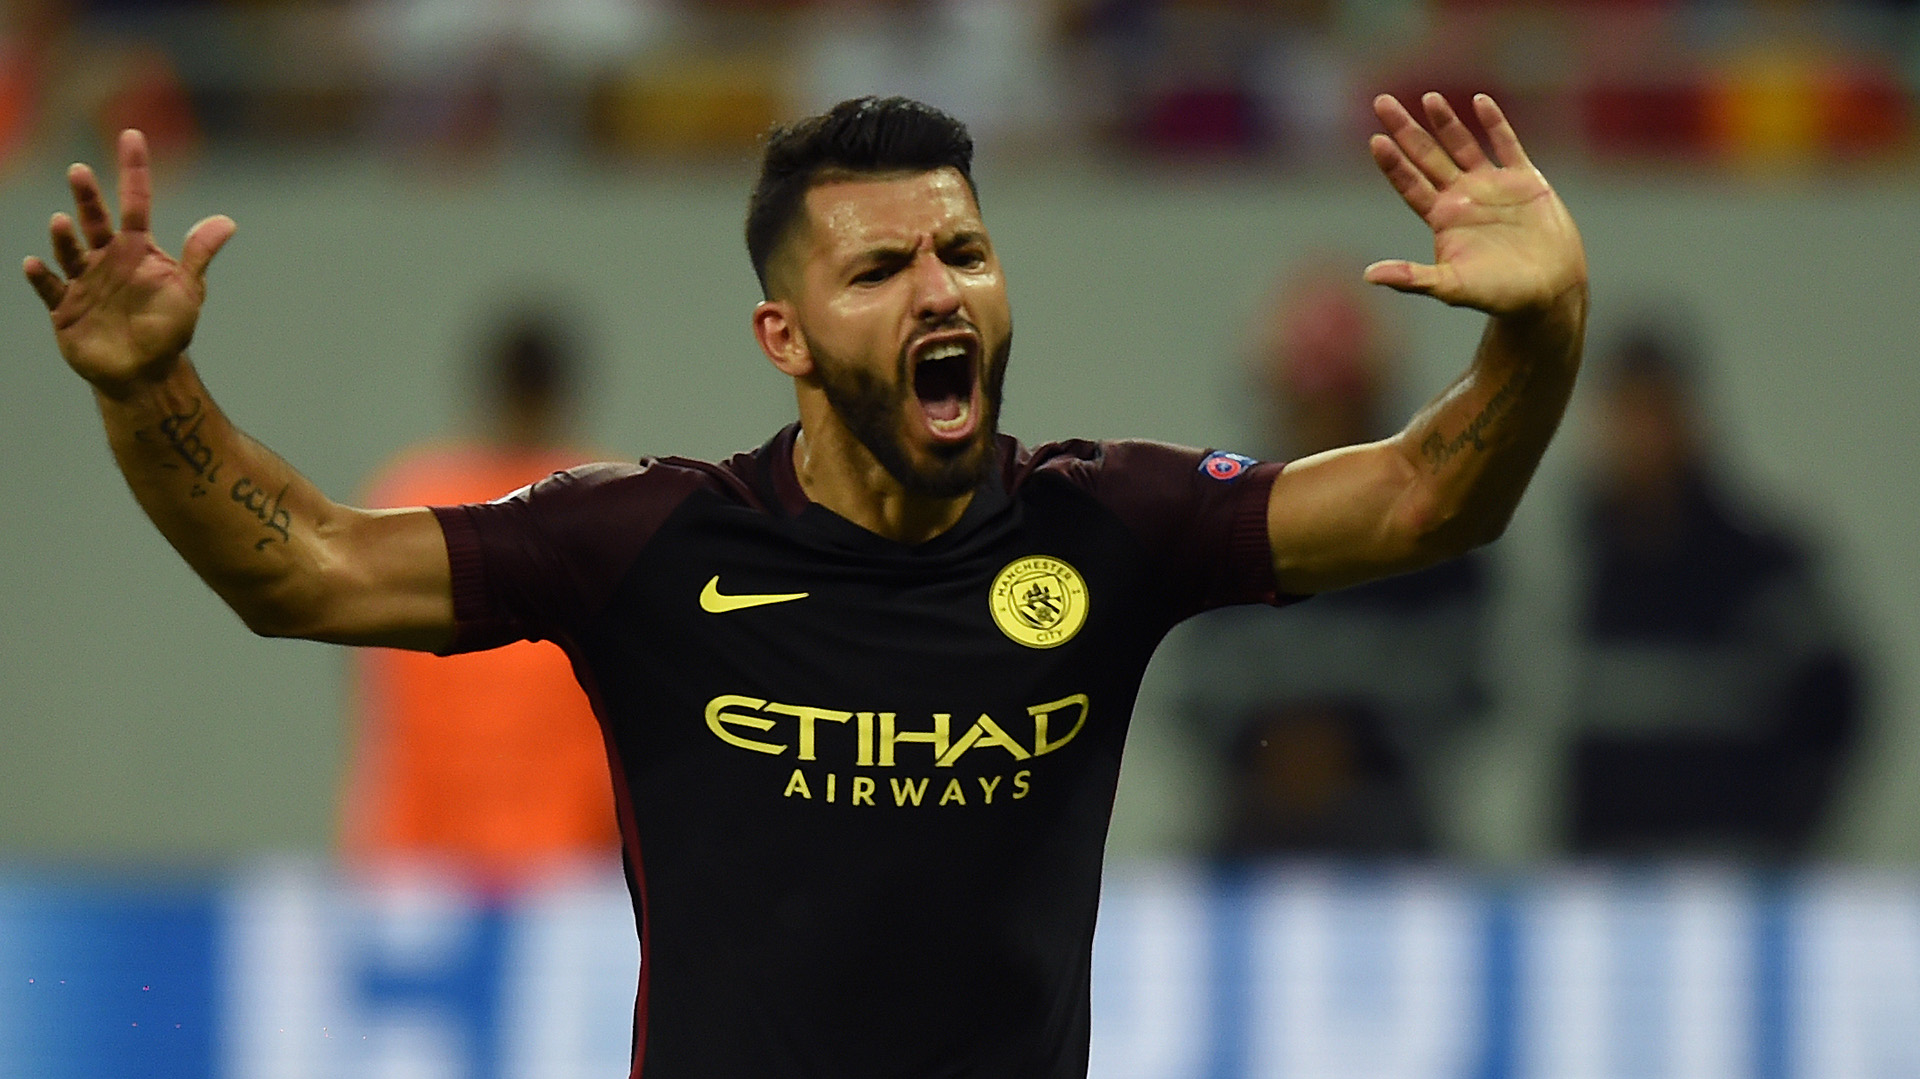 http://images.performgroup.com/di/library/GOAL_INTERNATIONAL/6c/73/sergio-aguero_mckf7drwf24w1eaihy2is1fpx.jpg